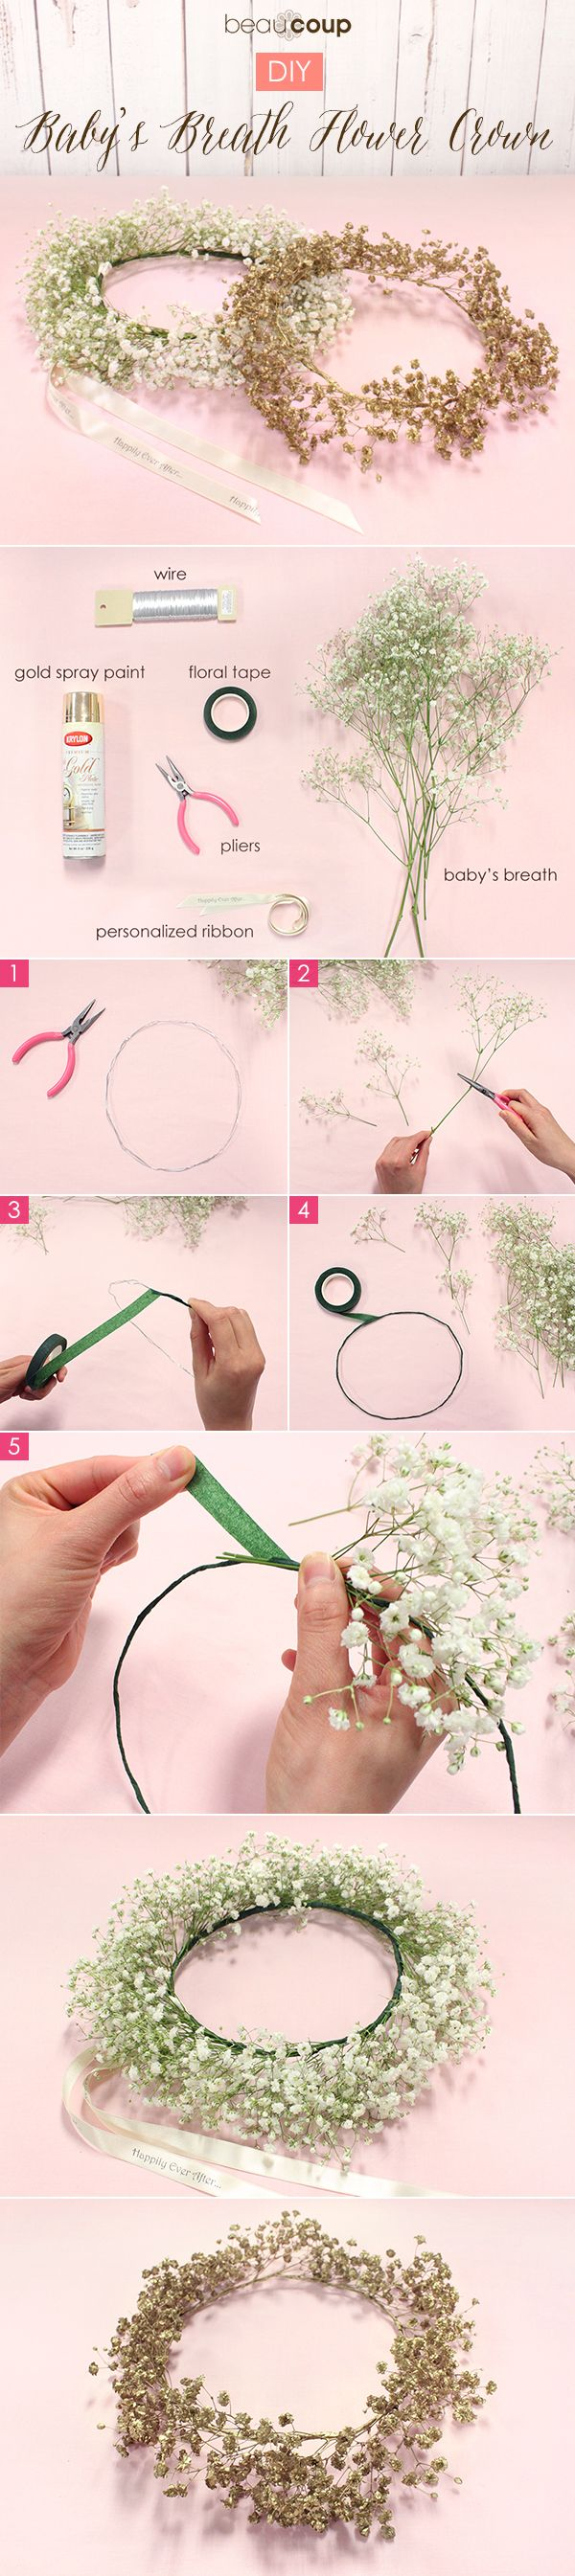 How-to DIY Baby's Breath Floral Crown  For full instructions, plus tips, visit the Beau-coup blog: http://blog.beau-coup.com/diy-babys-breath-flower-crown